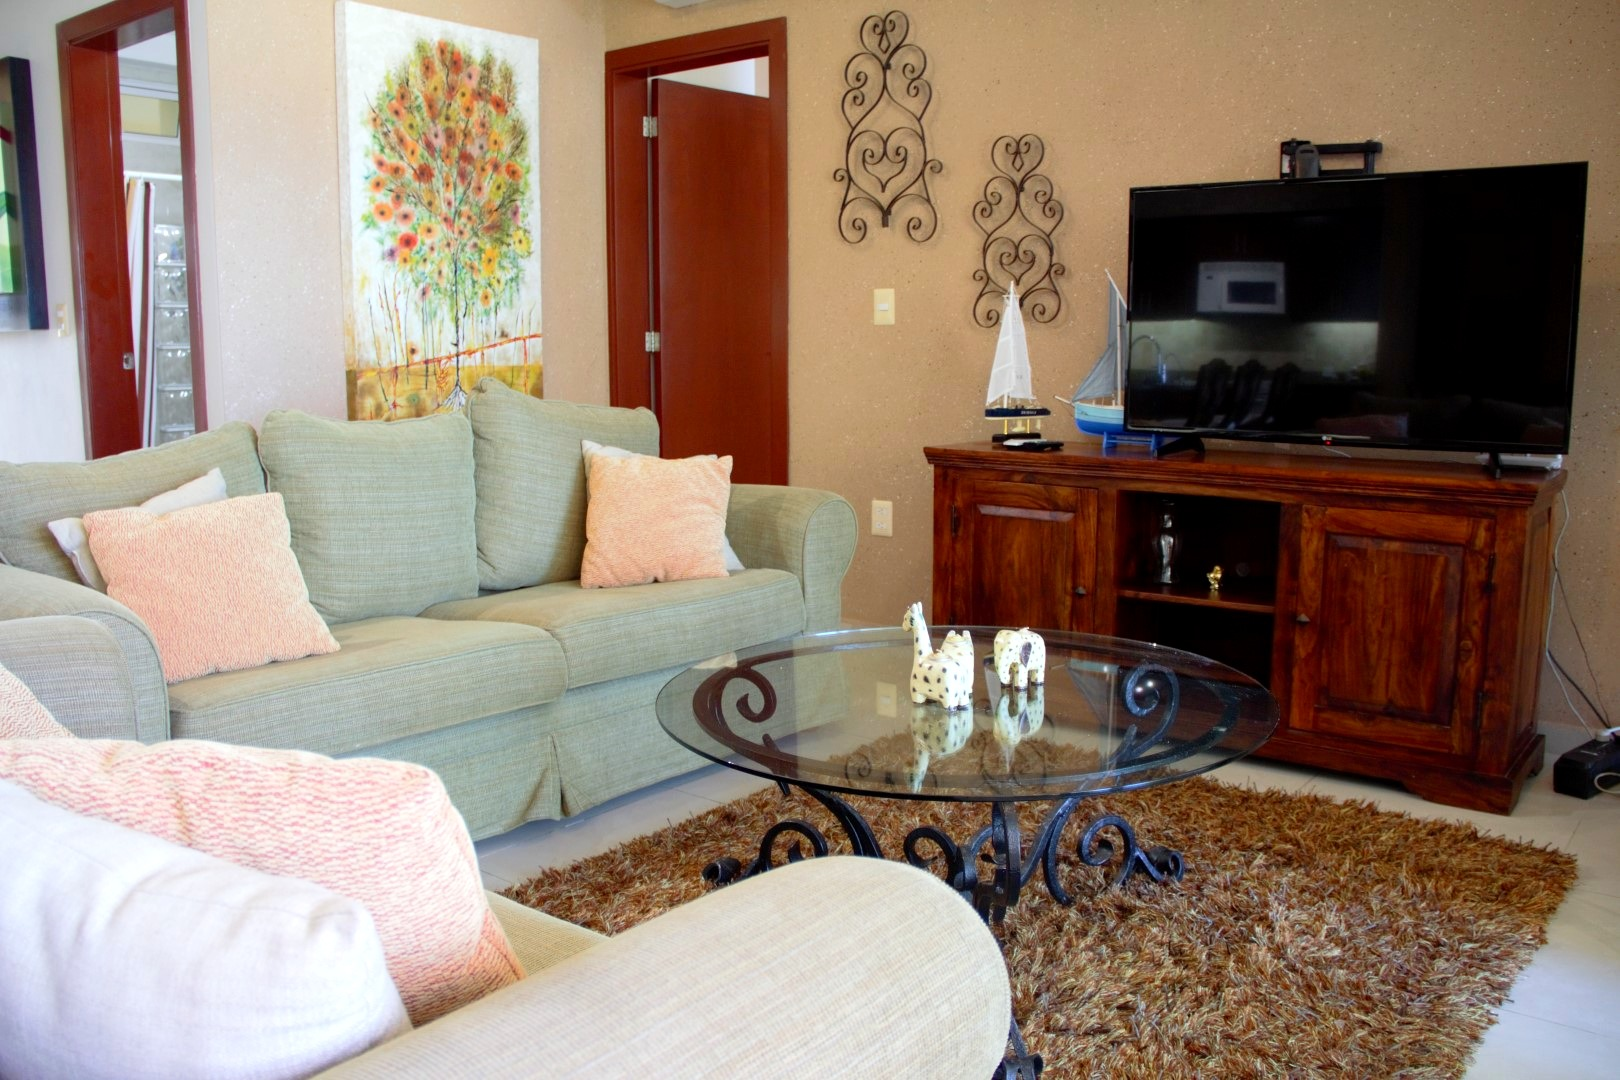 Living room with comfortable sofas and flat-screen TV.